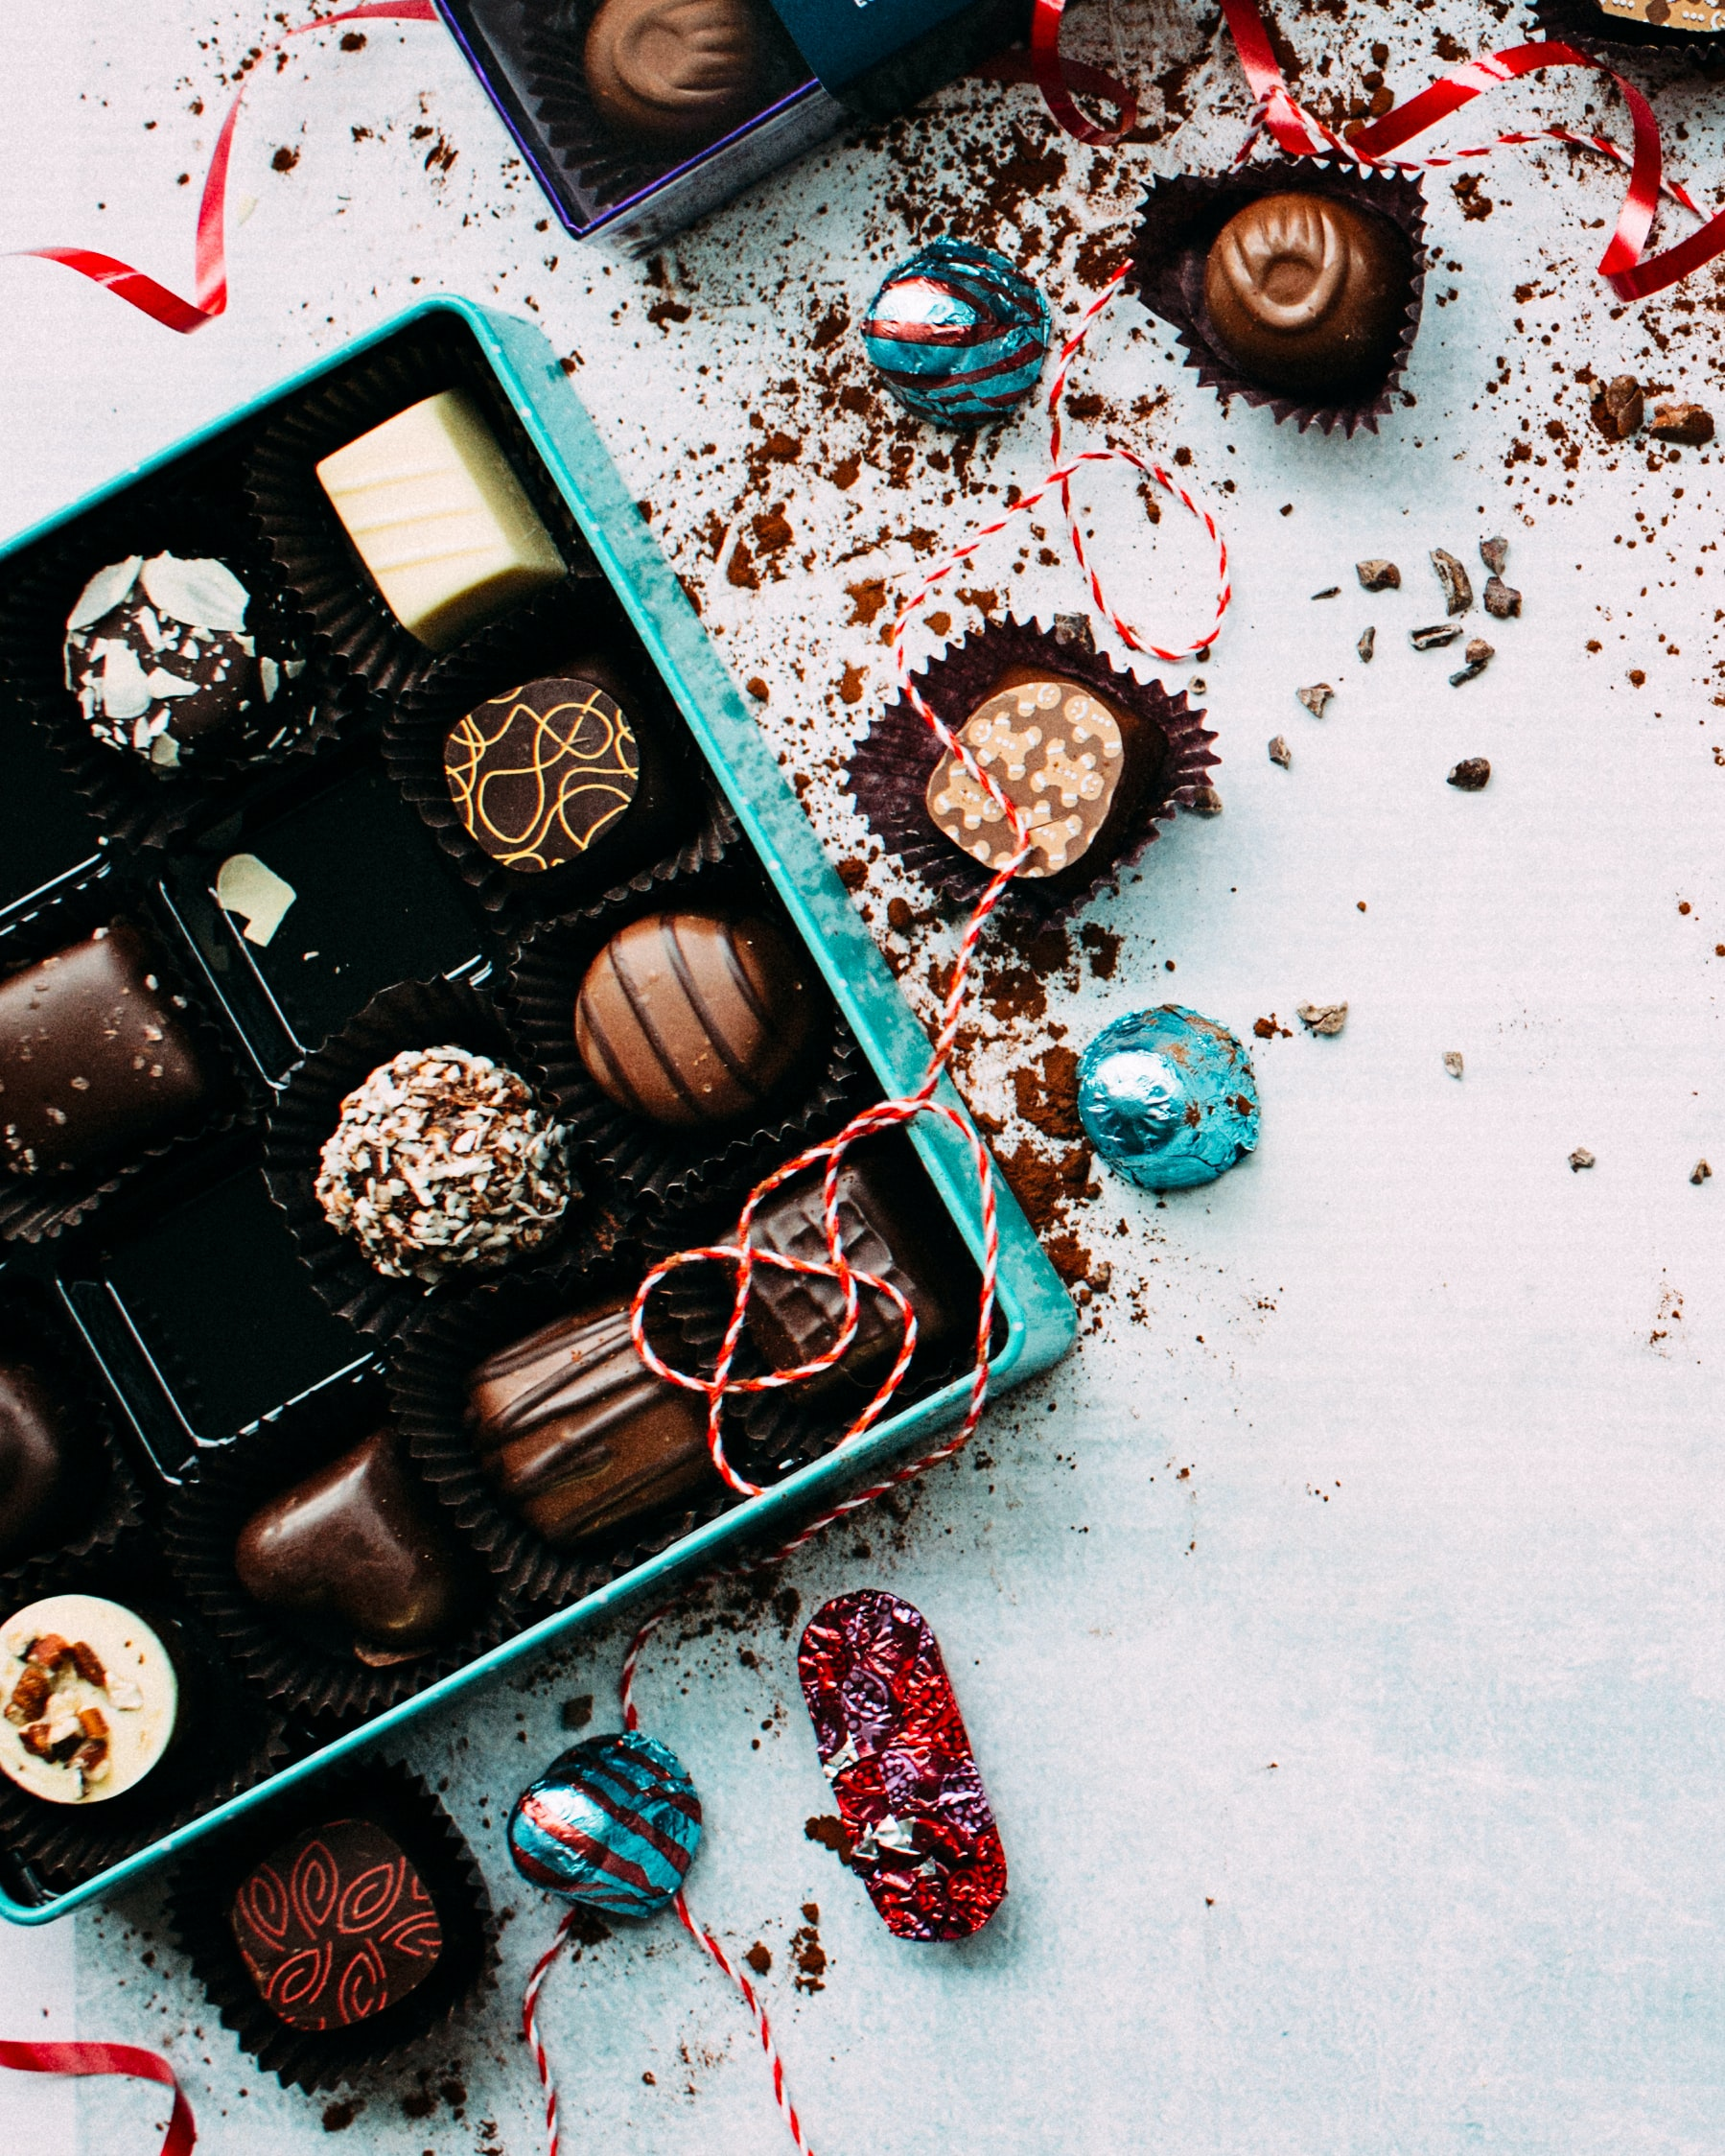 So How Do You Go From Boiled Lollies to Chocolates?